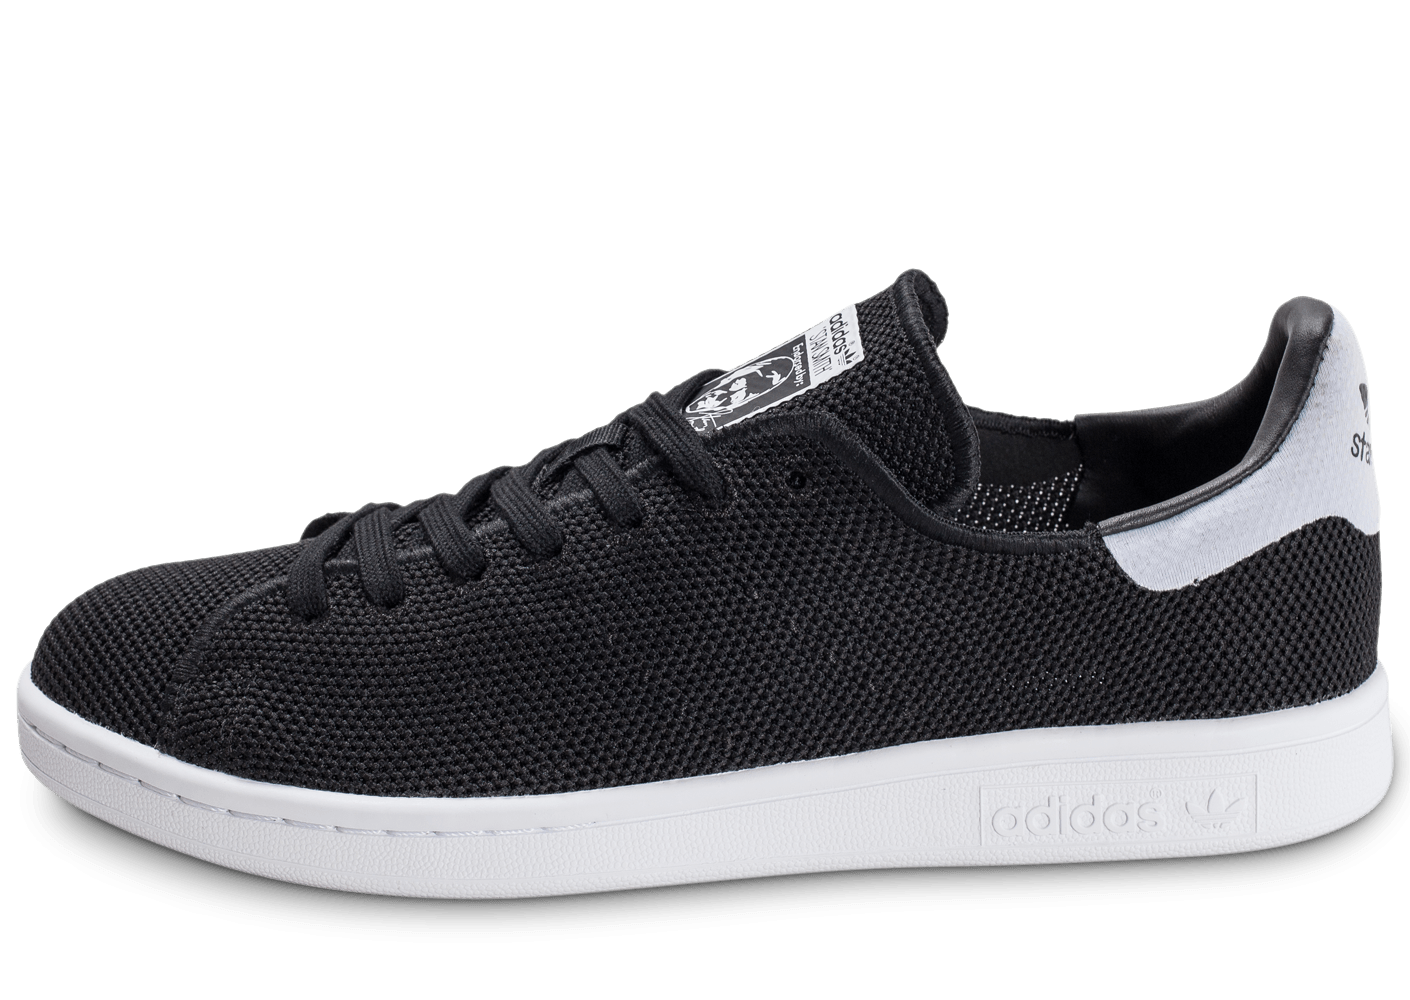 Adidas stan smith mesh noire chaussures homme chausport for Adidas nuove stan smith